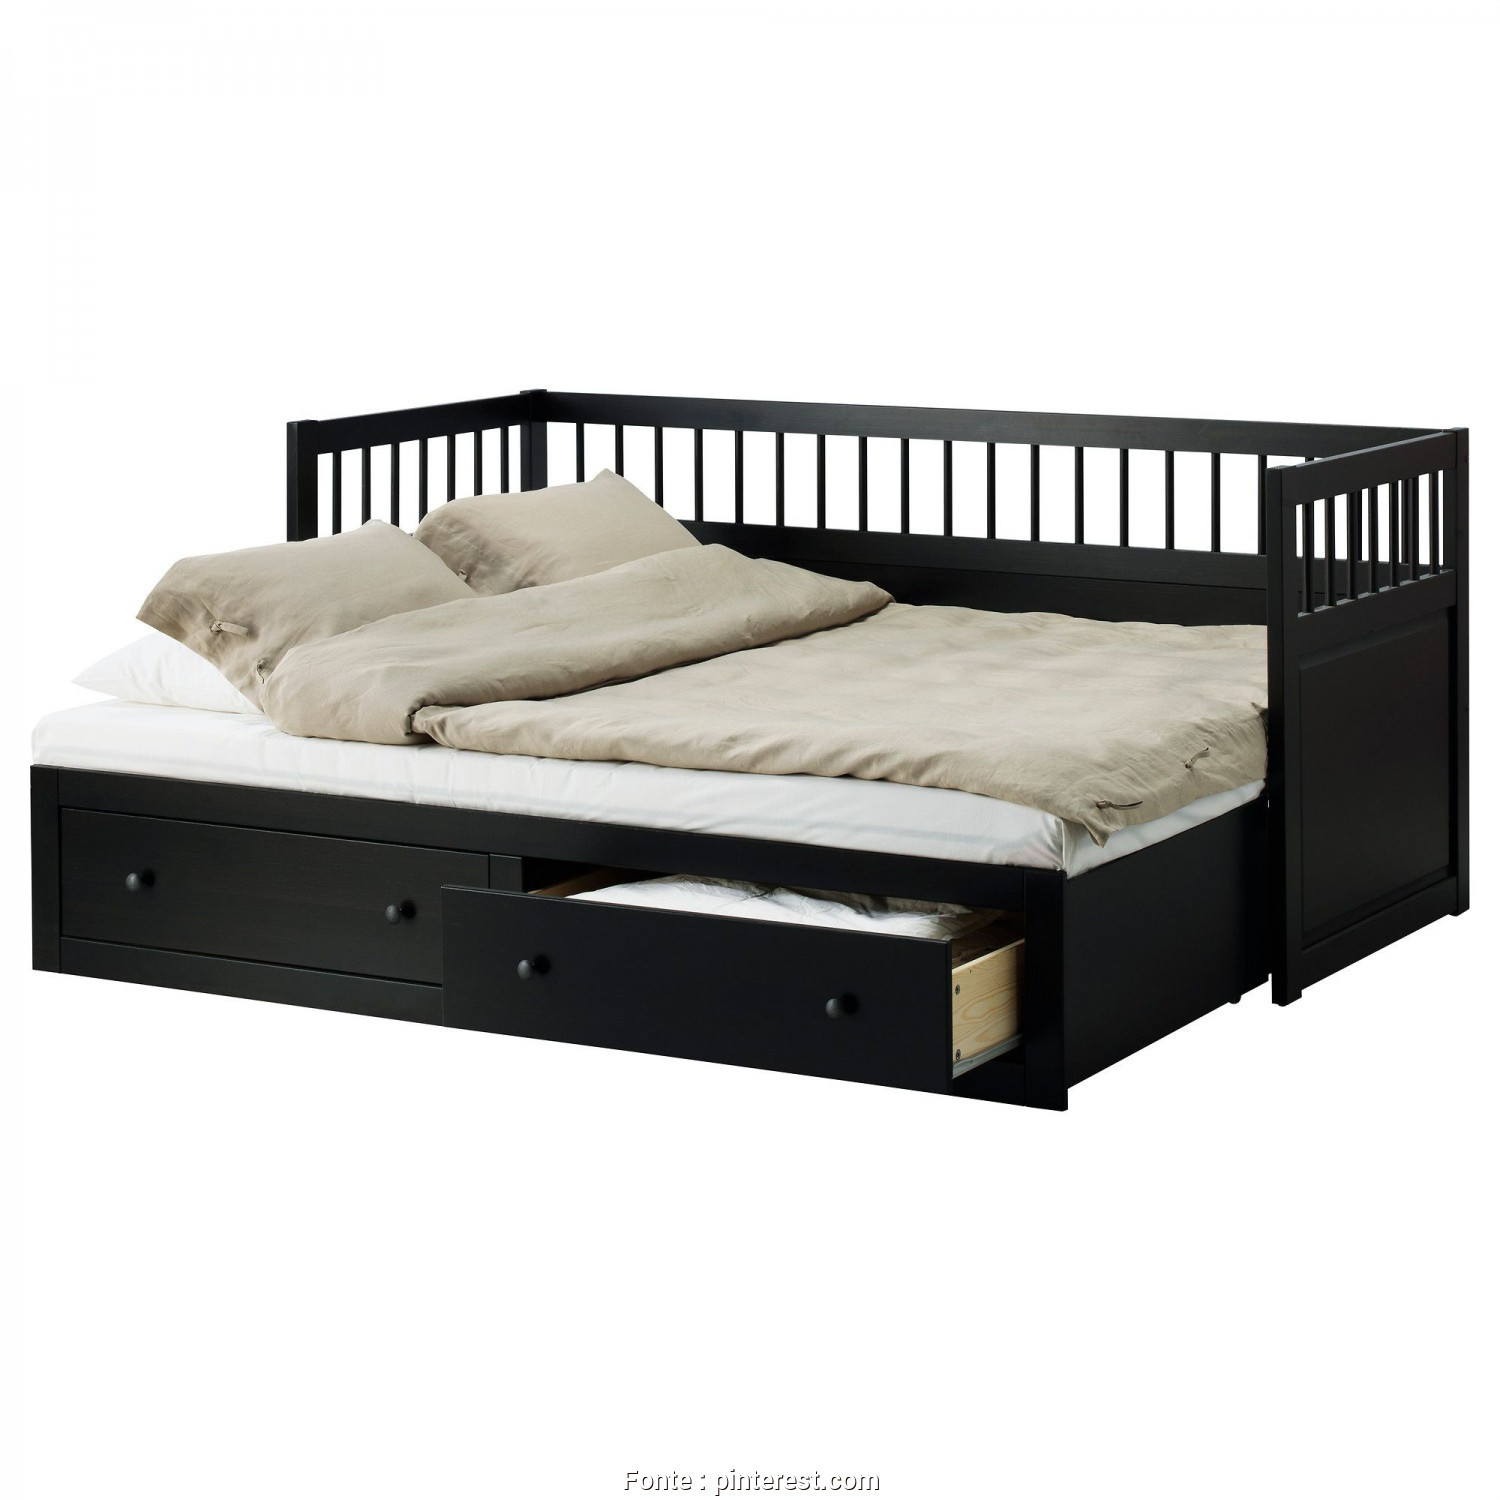 Divano Letto Ikea Flekke, Divertente Awesome Wooden Painted Black Best IKEA Daybed With Trundle With Tuxedo Backseat Models In Modern Master Bedroom Decors